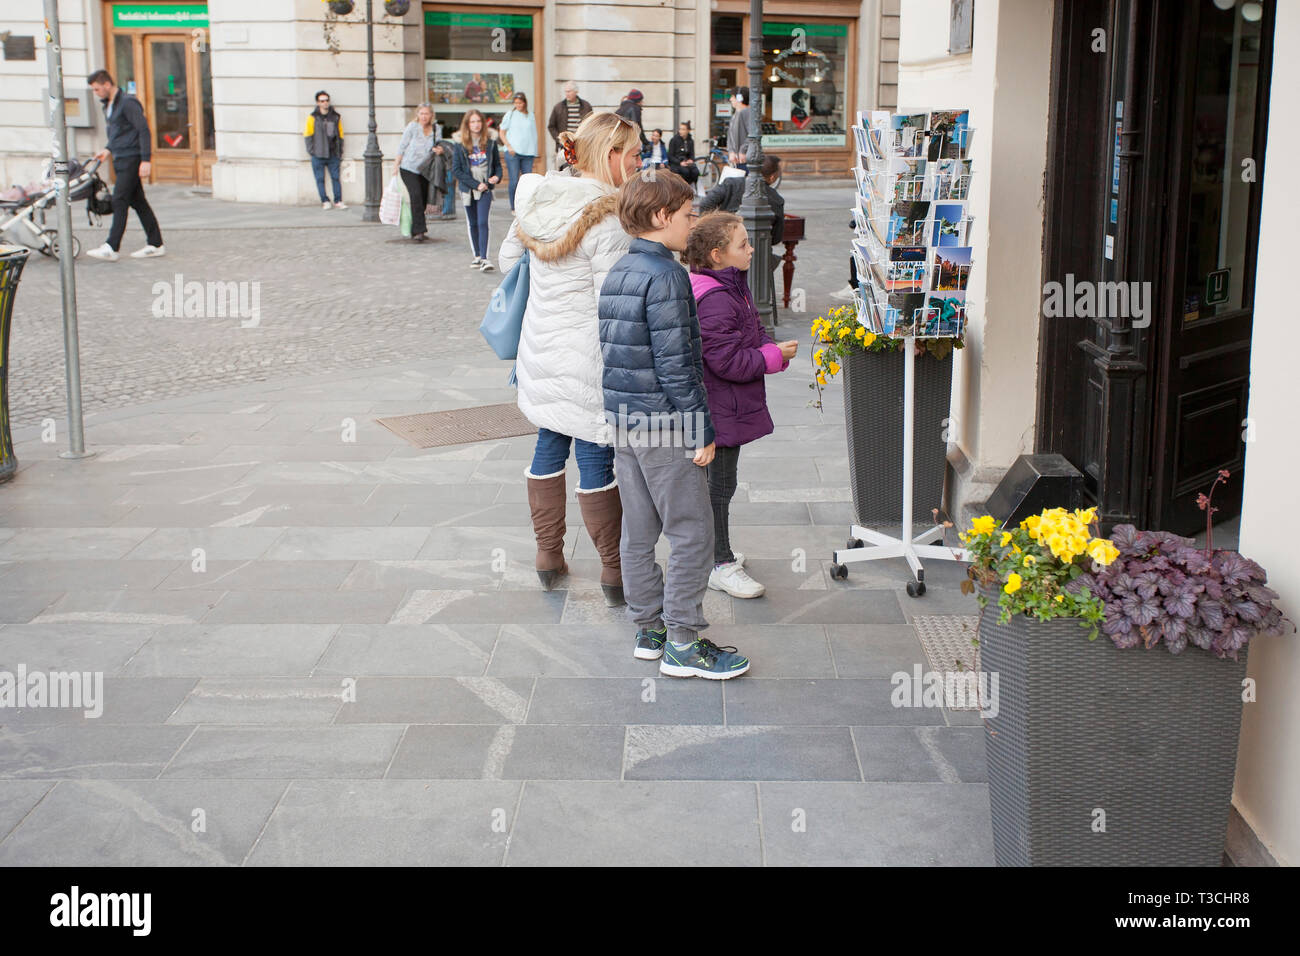 Tourists in Slovenia's capital browsing postcards - Stock Image